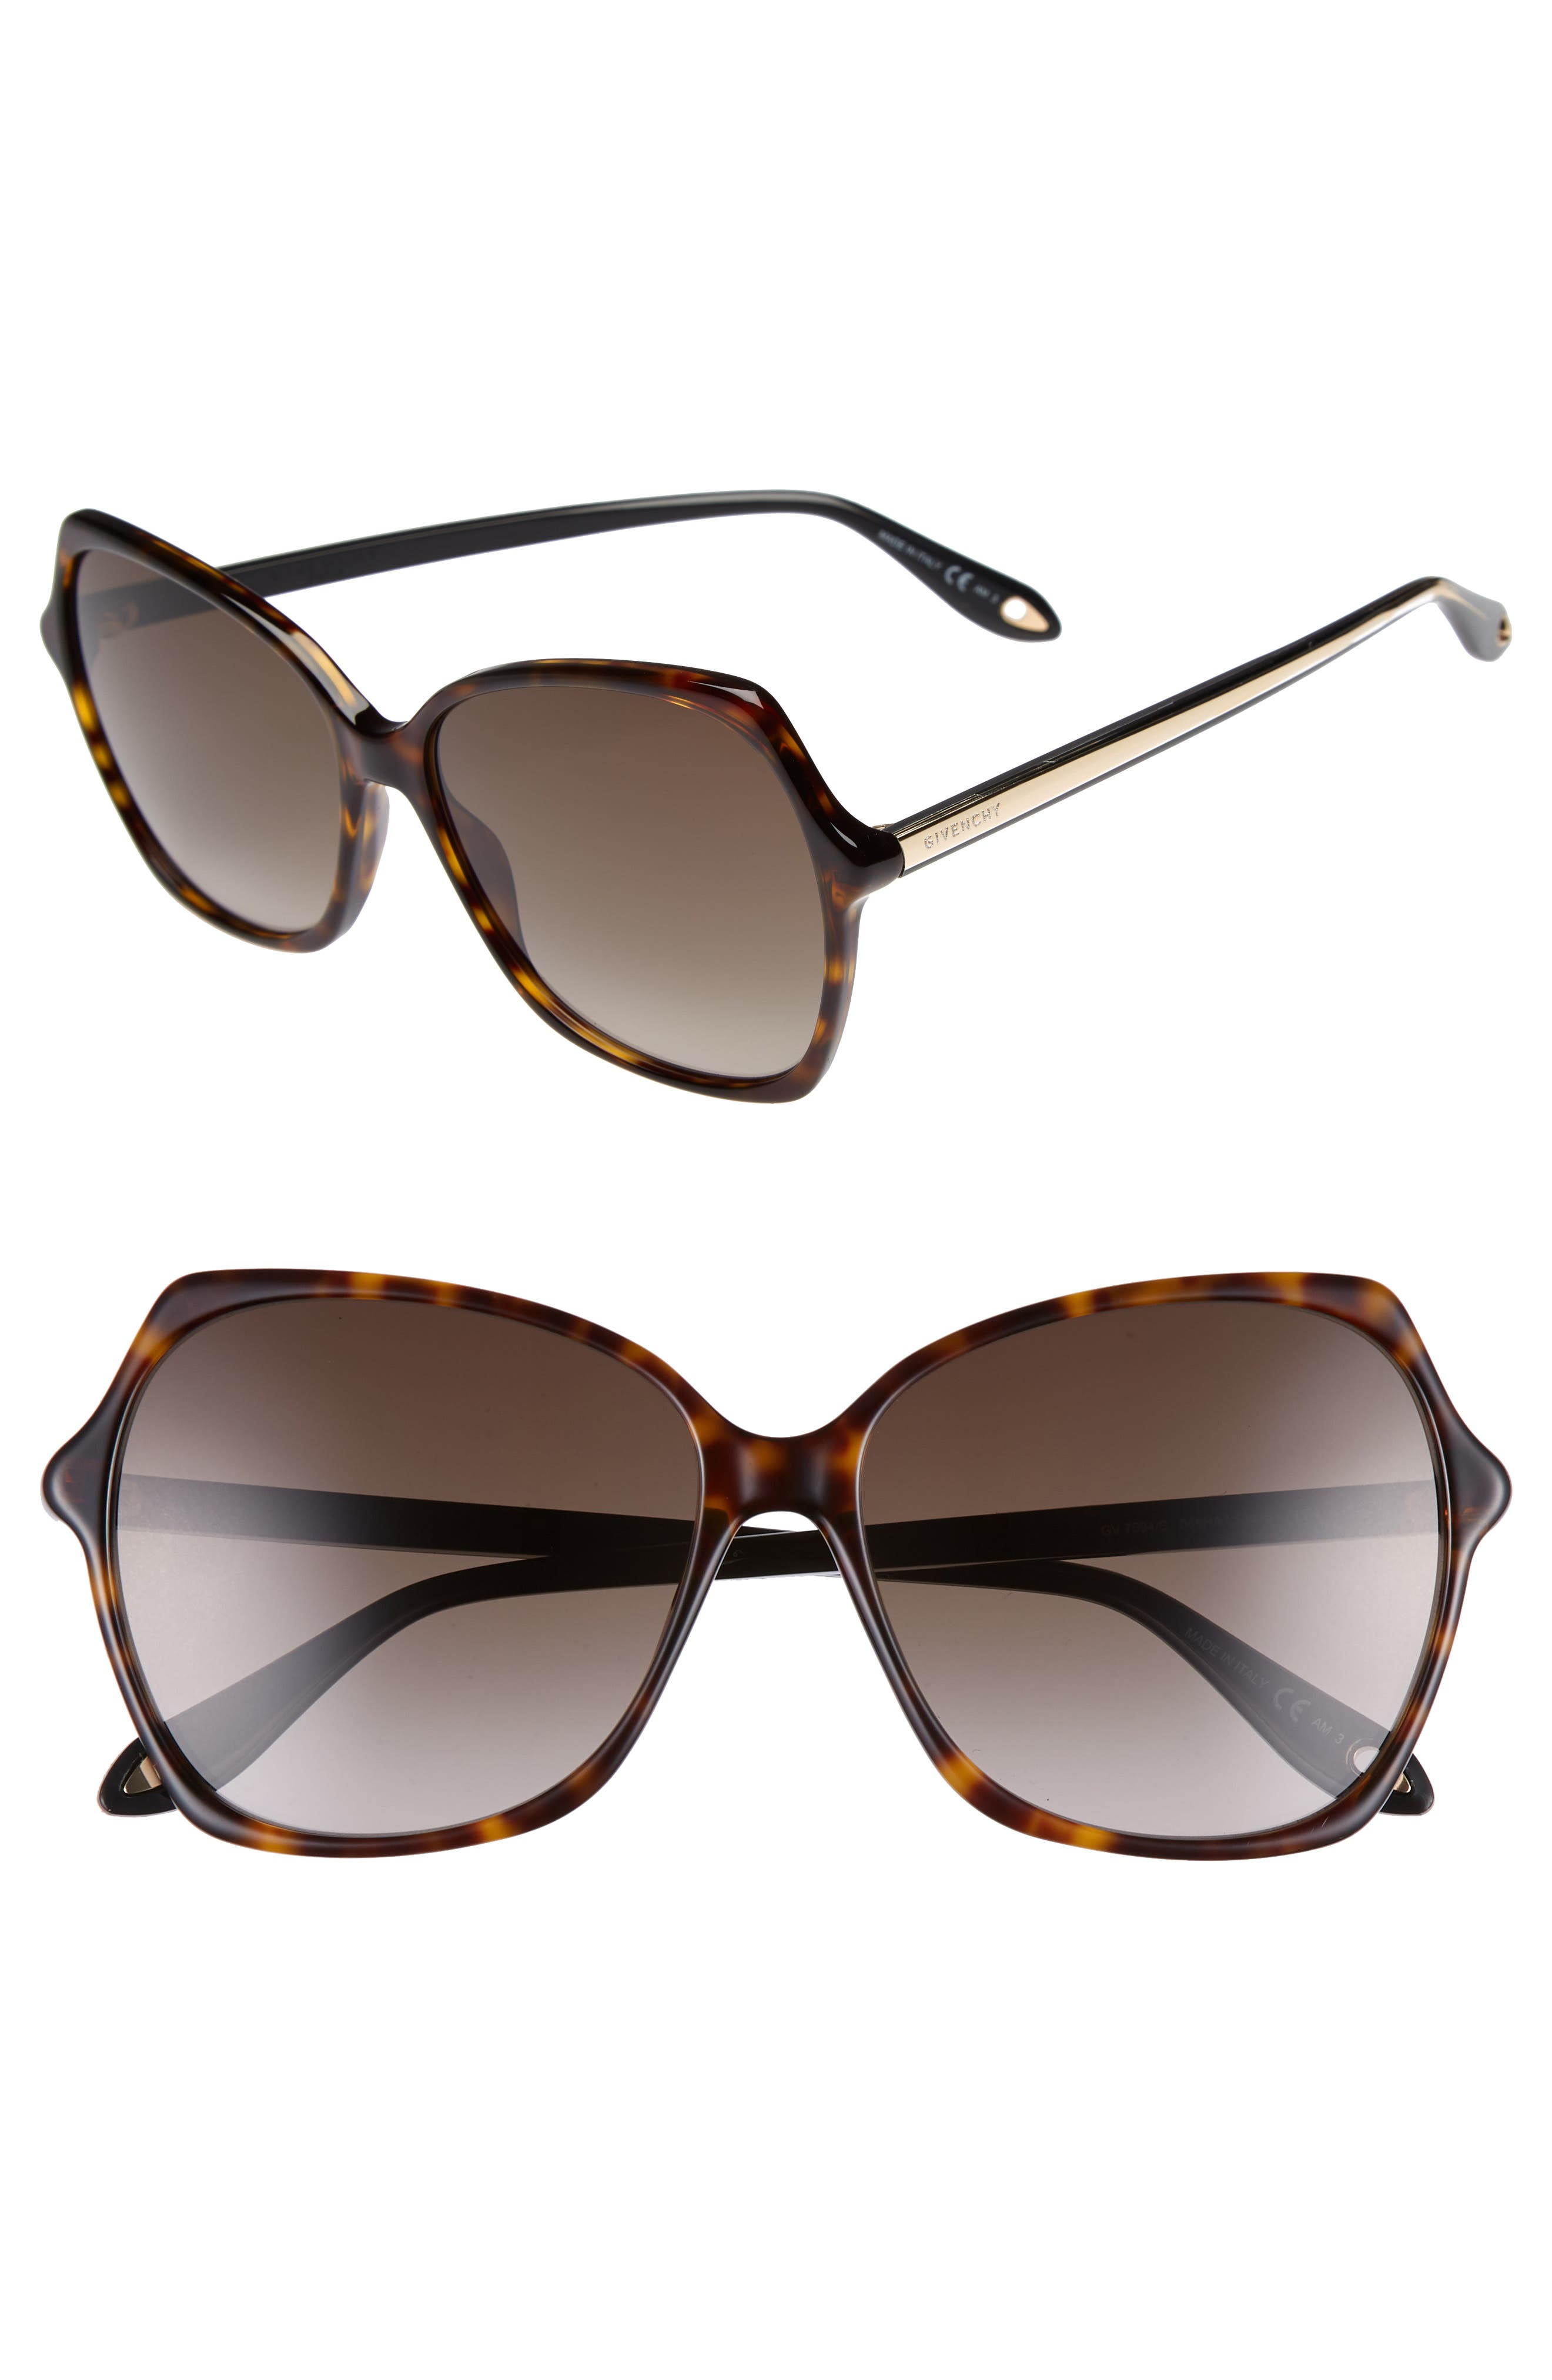 Main Image - Givenchy 59mm Butterfly Sunglasses